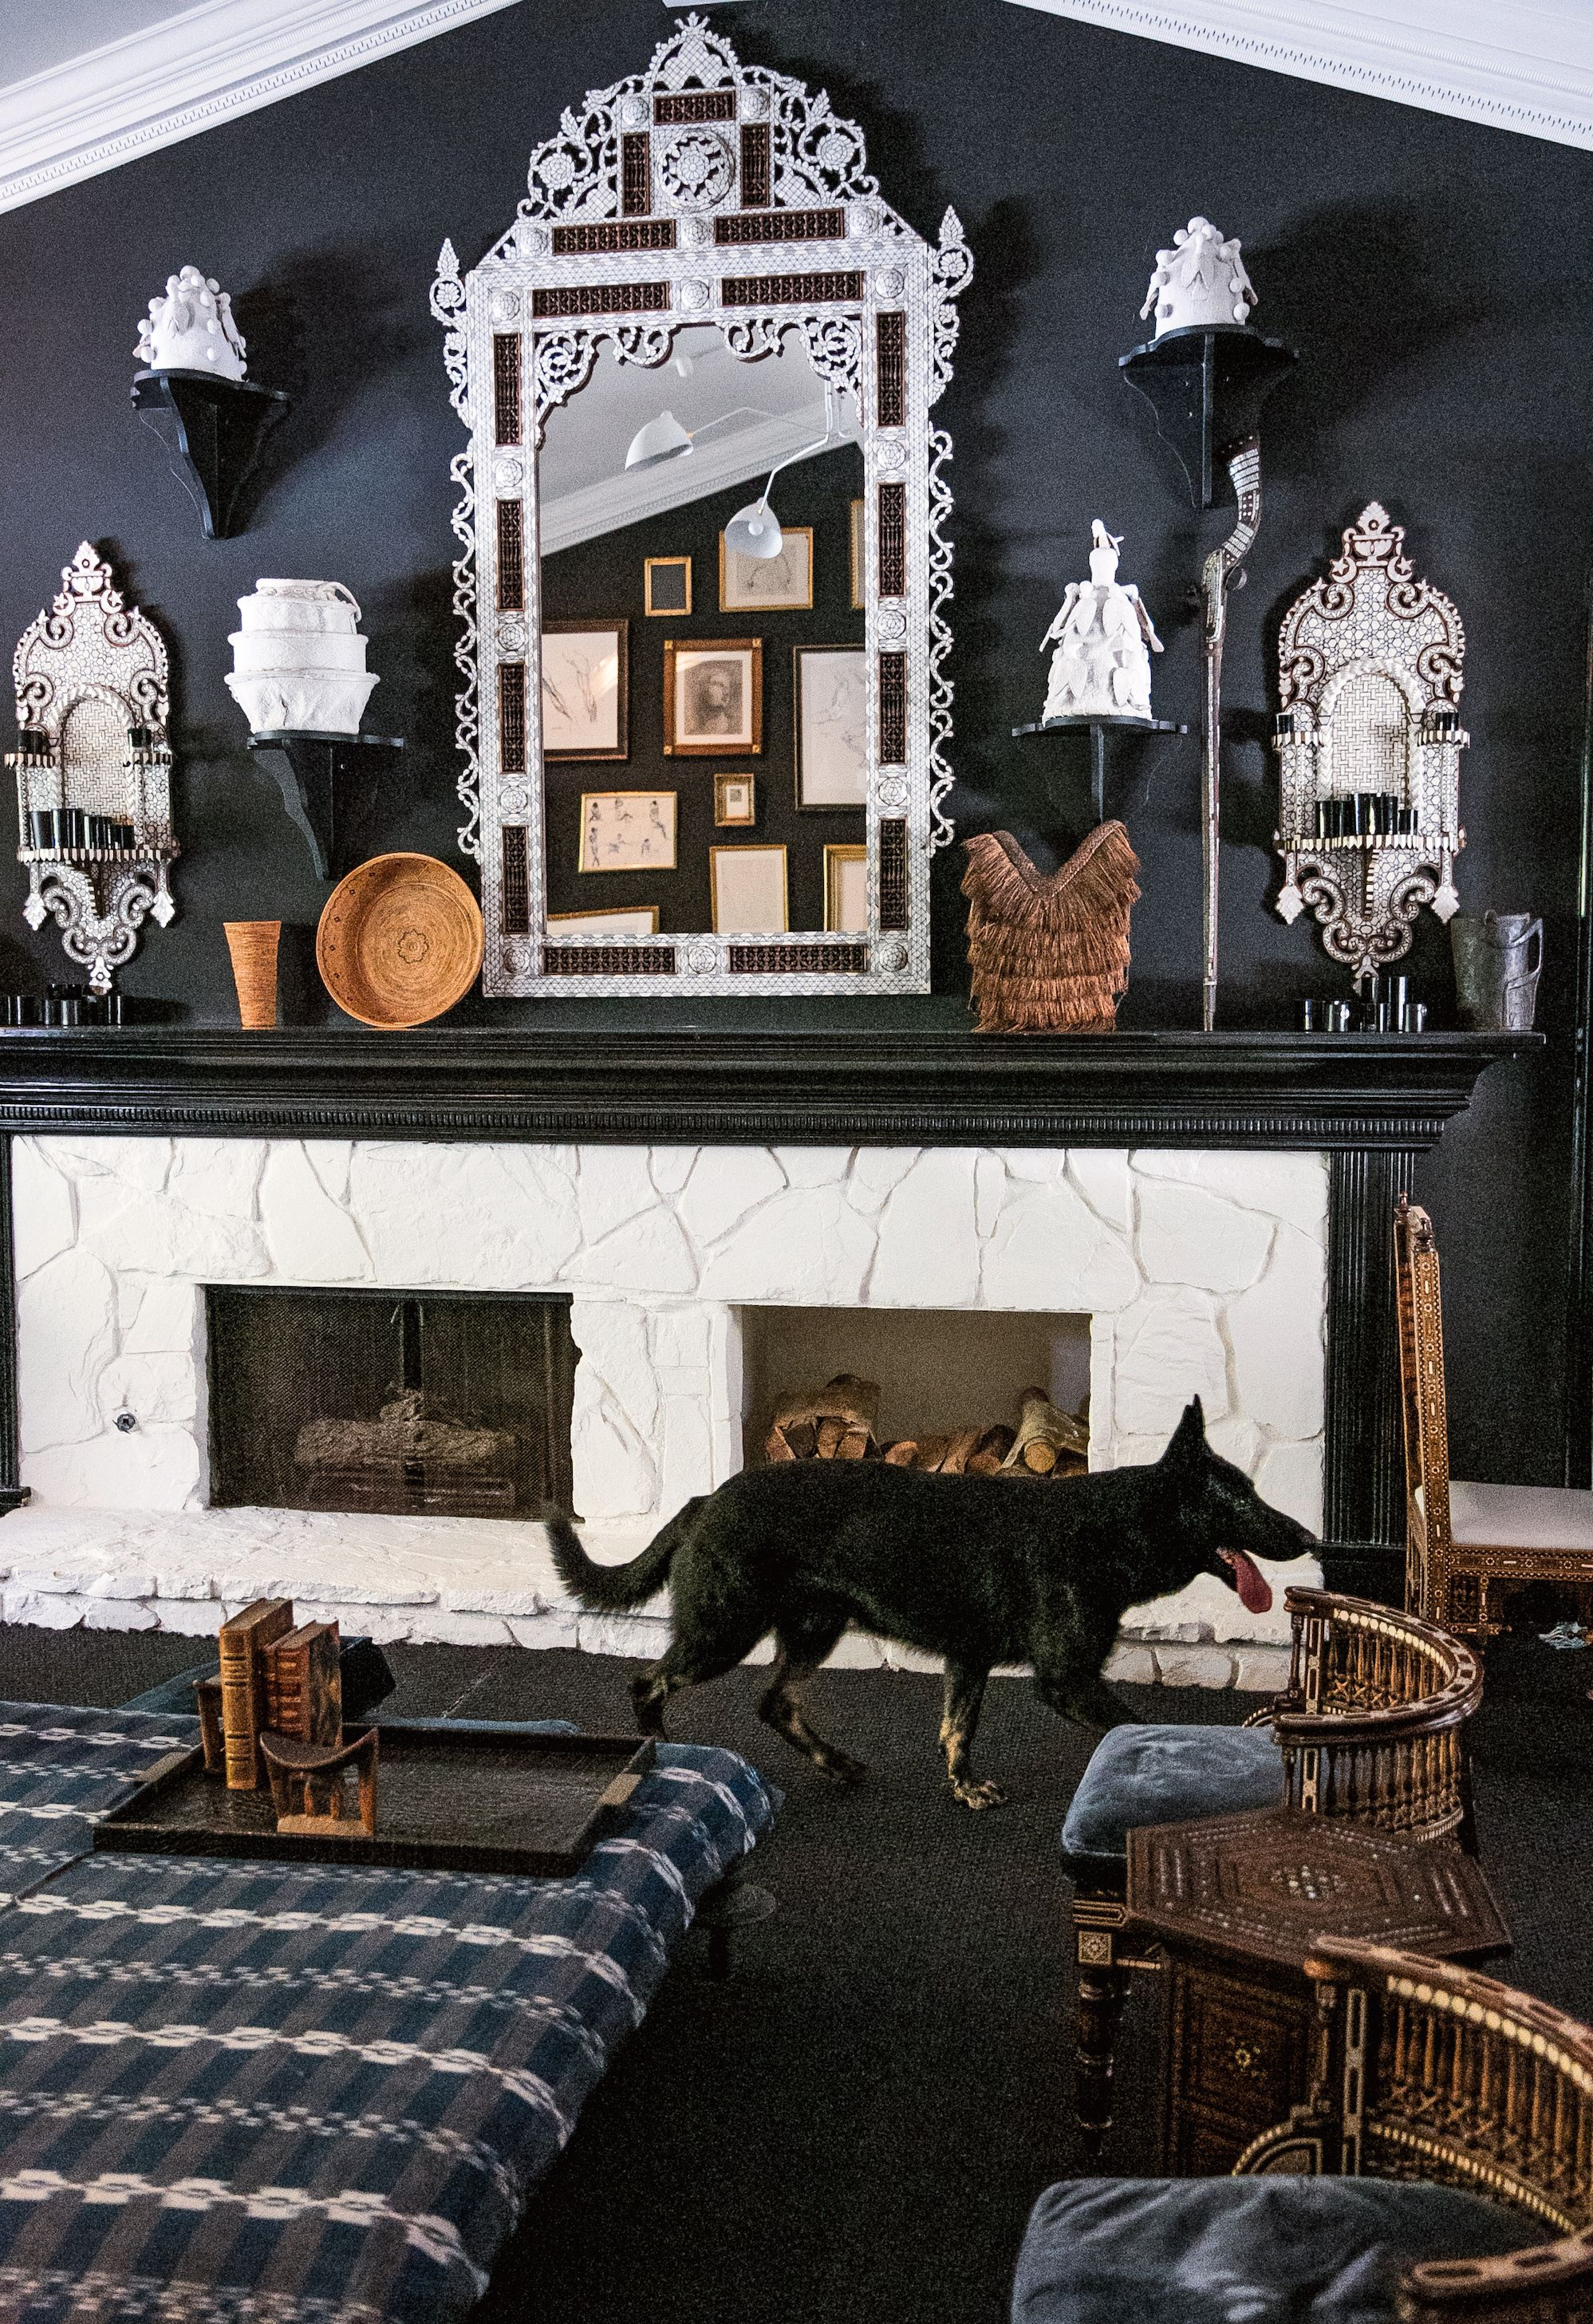 Dog Homes Interior Design on home security dogs, pets dogs, retirement dogs, health dogs, home defense dogs, law dogs, school dogs, new york dogs, food dogs, animals dogs, baby dogs,